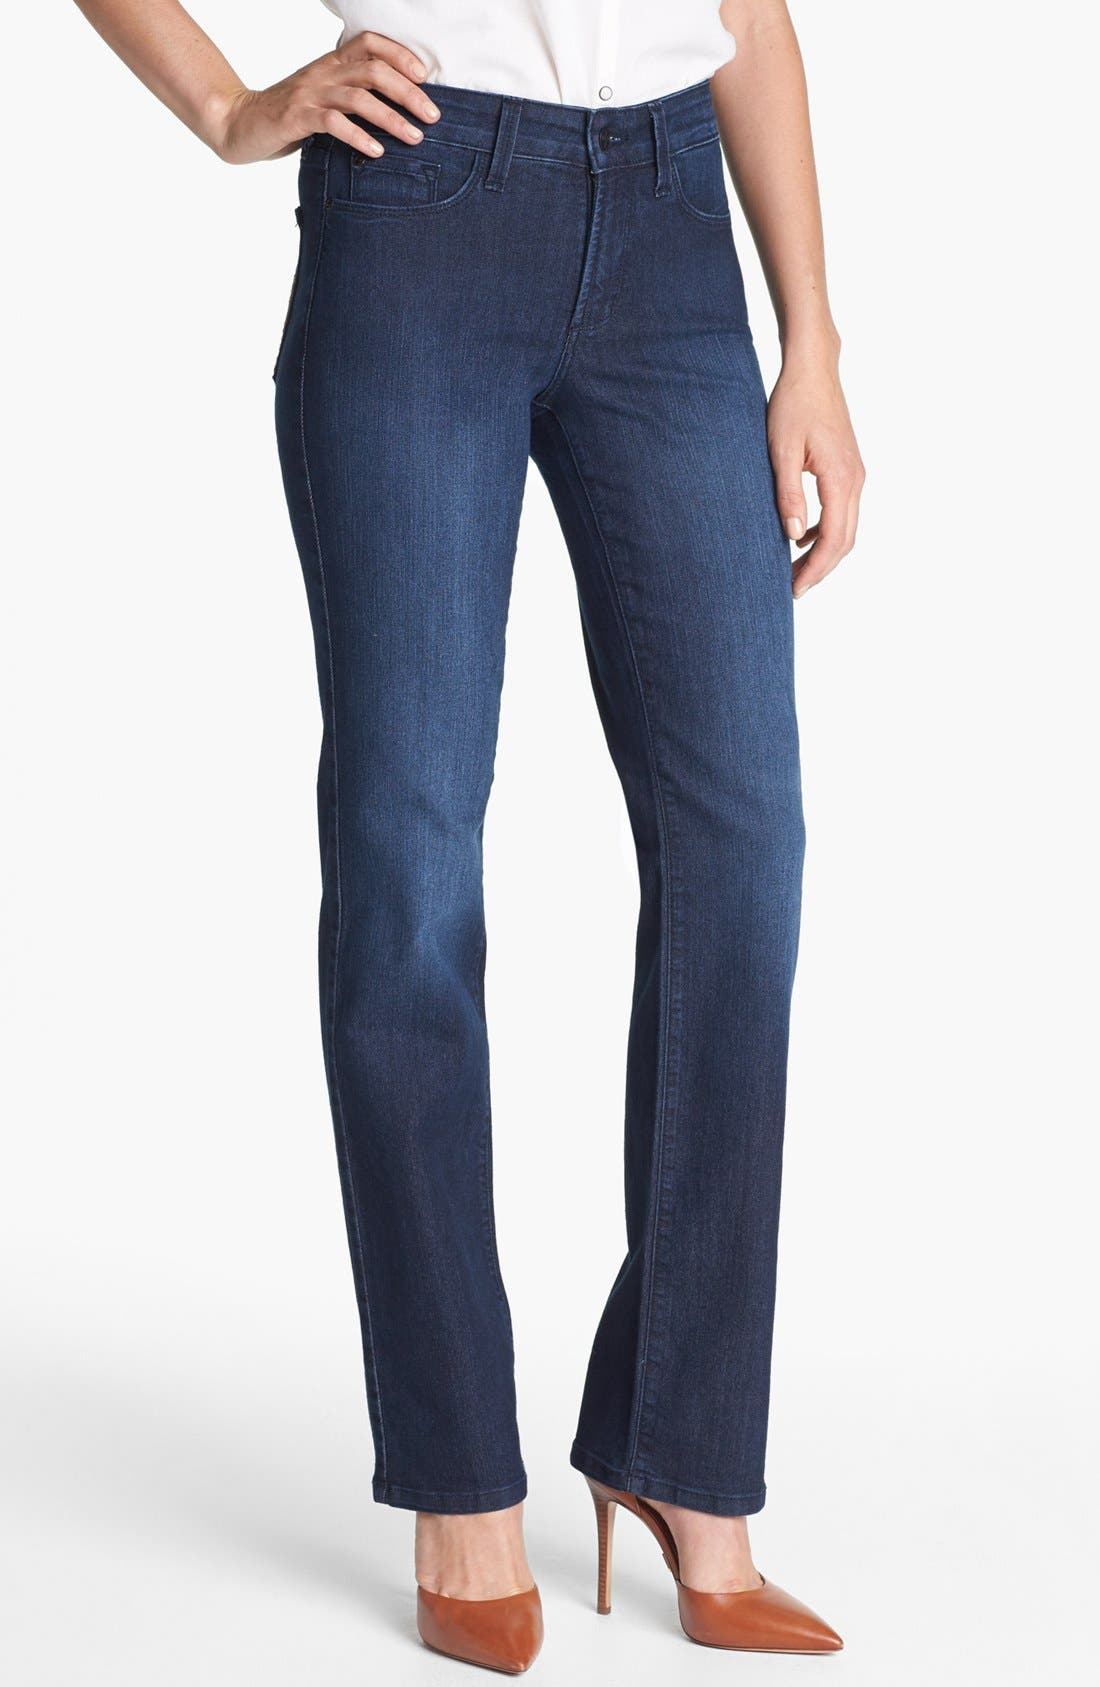 Alternate Image 1 Selected - NYDJ 'Marilyn' Stretch Straight Leg Jeans (Dana Point) (Petite)